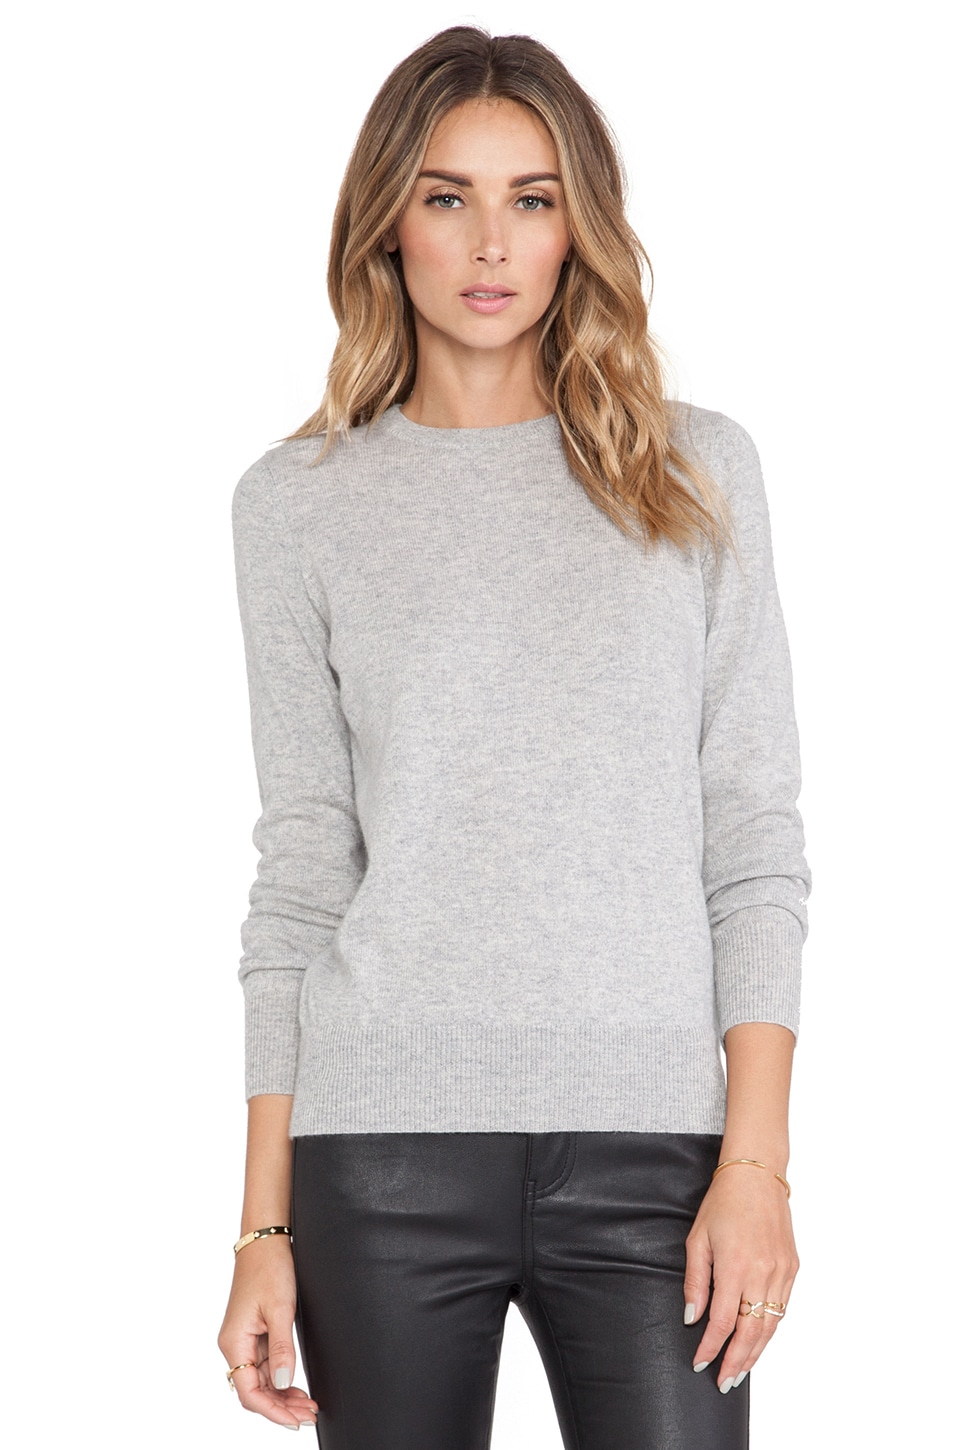 DemyLee Joie Cashmere Sweater in Light Heather Grey